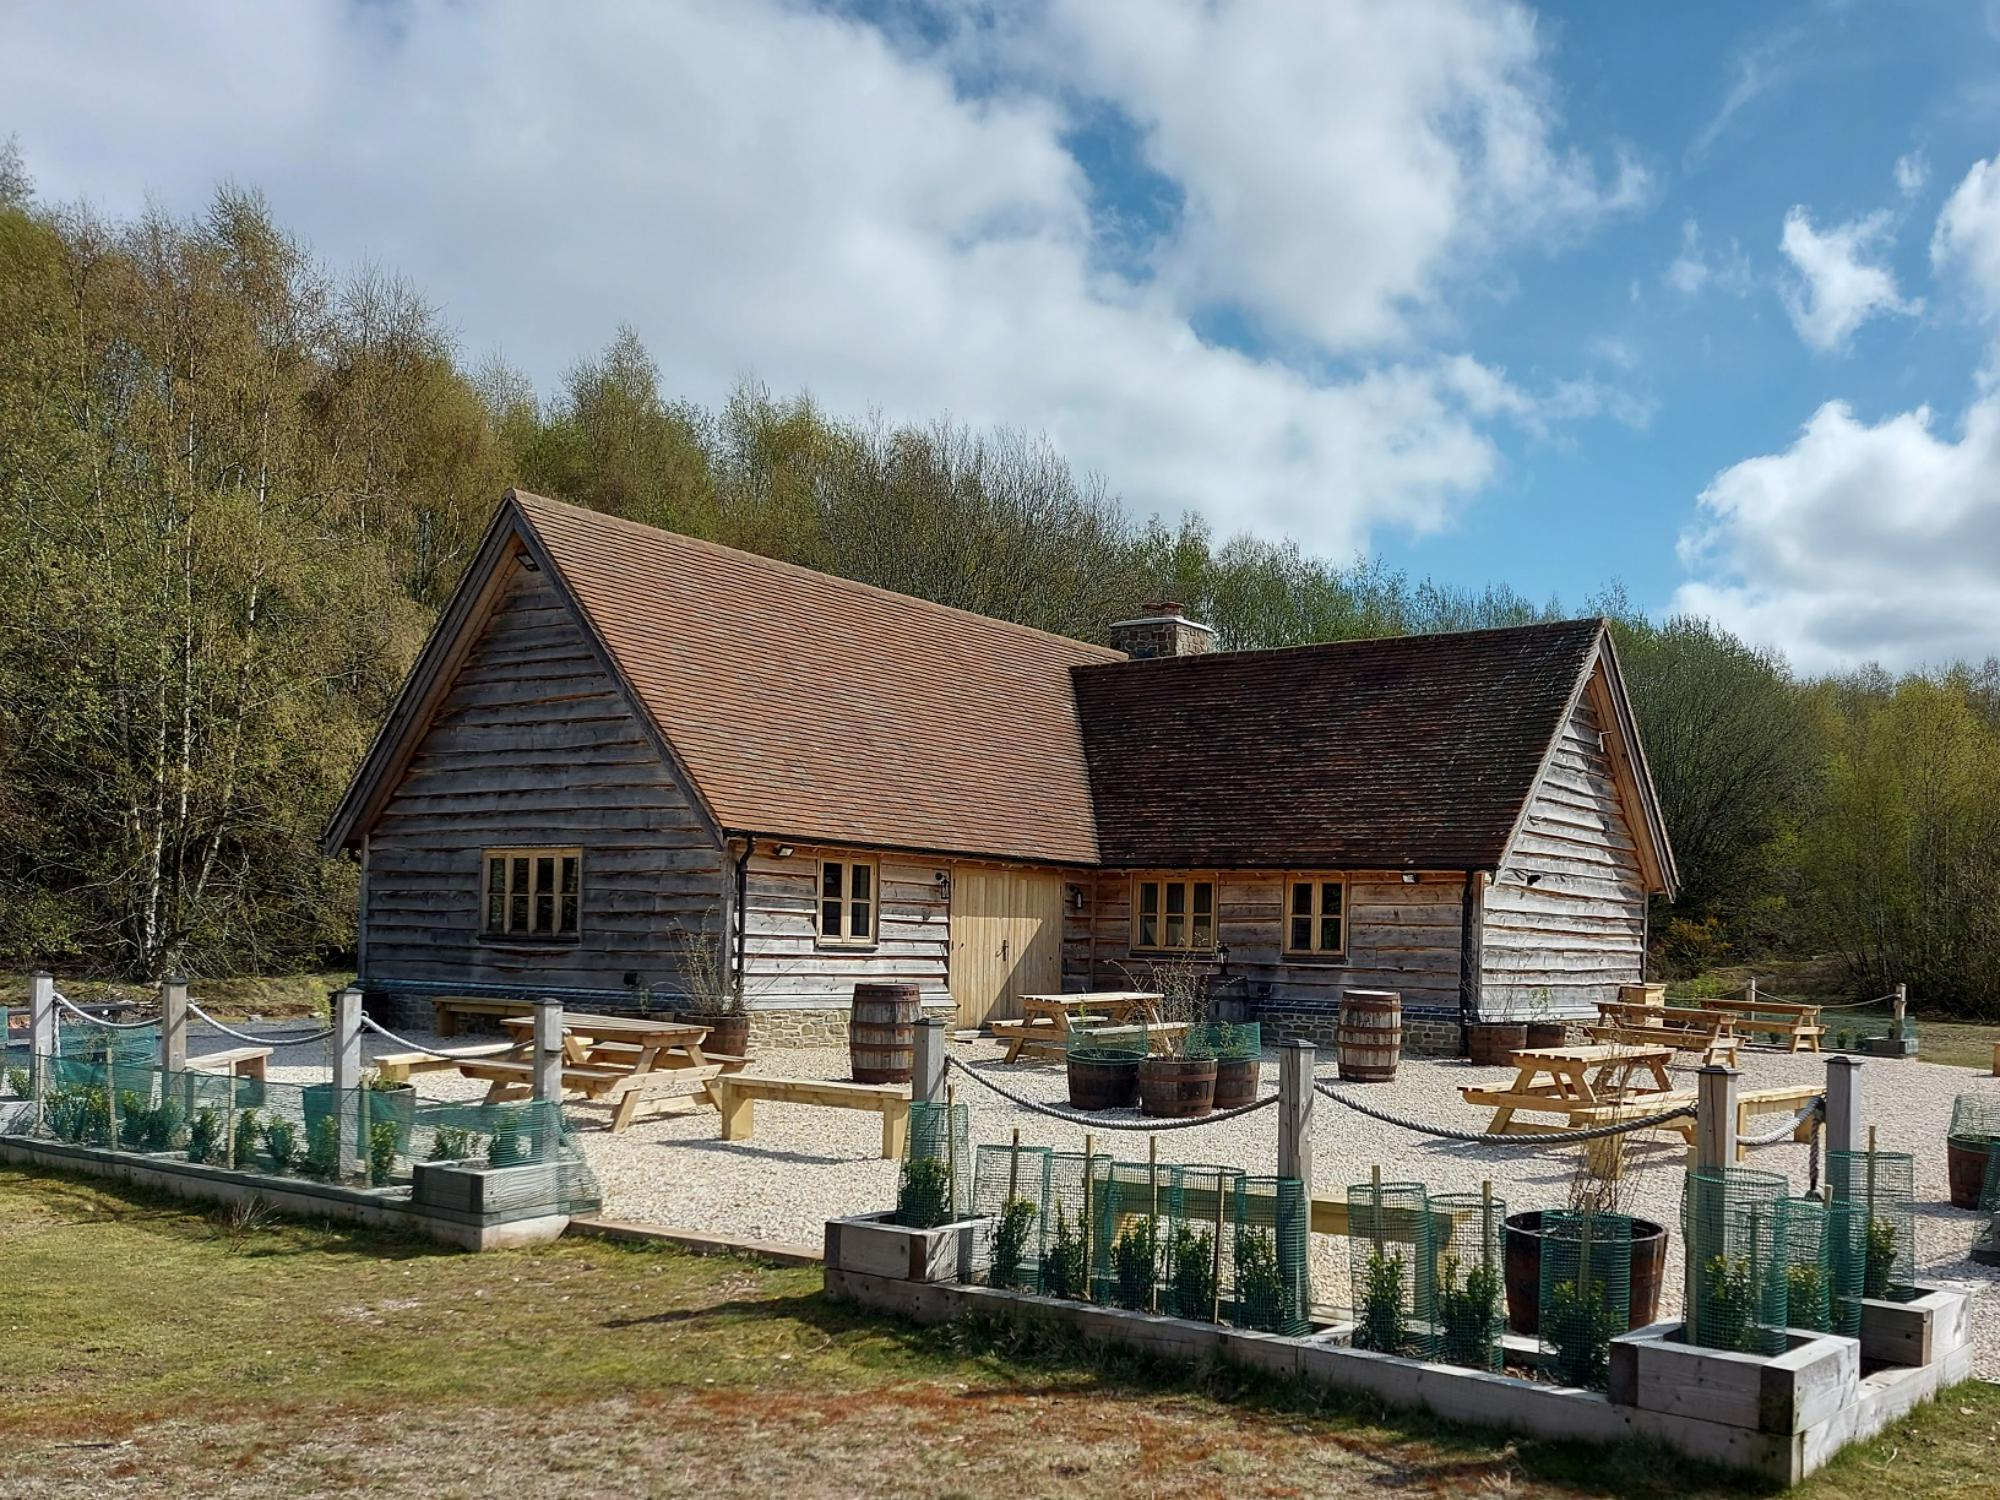 Self-Catering in Stoke on Trent holidays at Cool Places